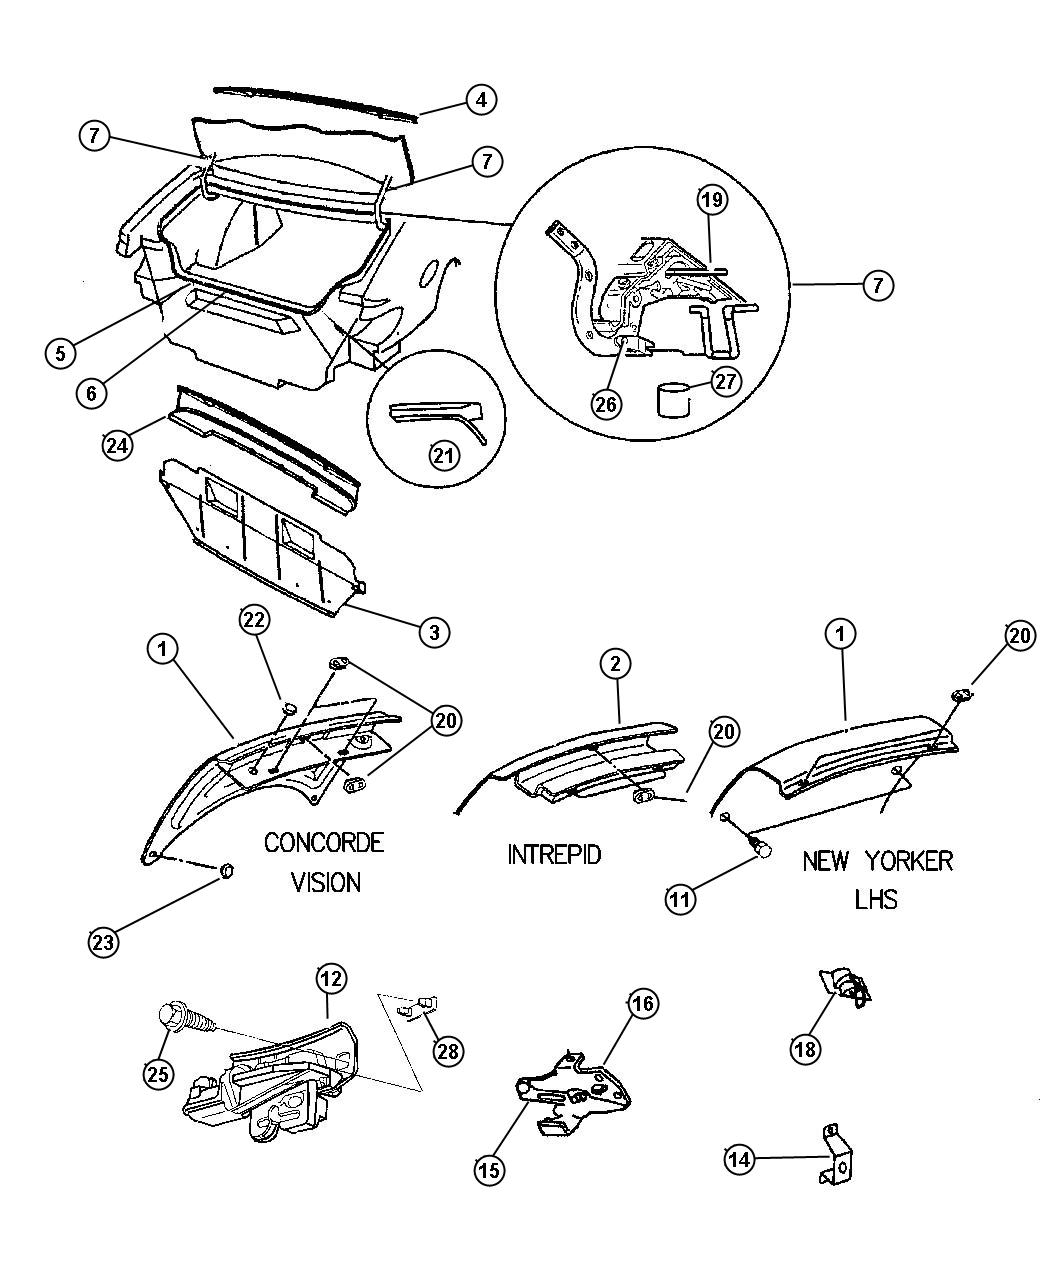 Service manual [1994 Eagle Vision Manual Wiring Sch